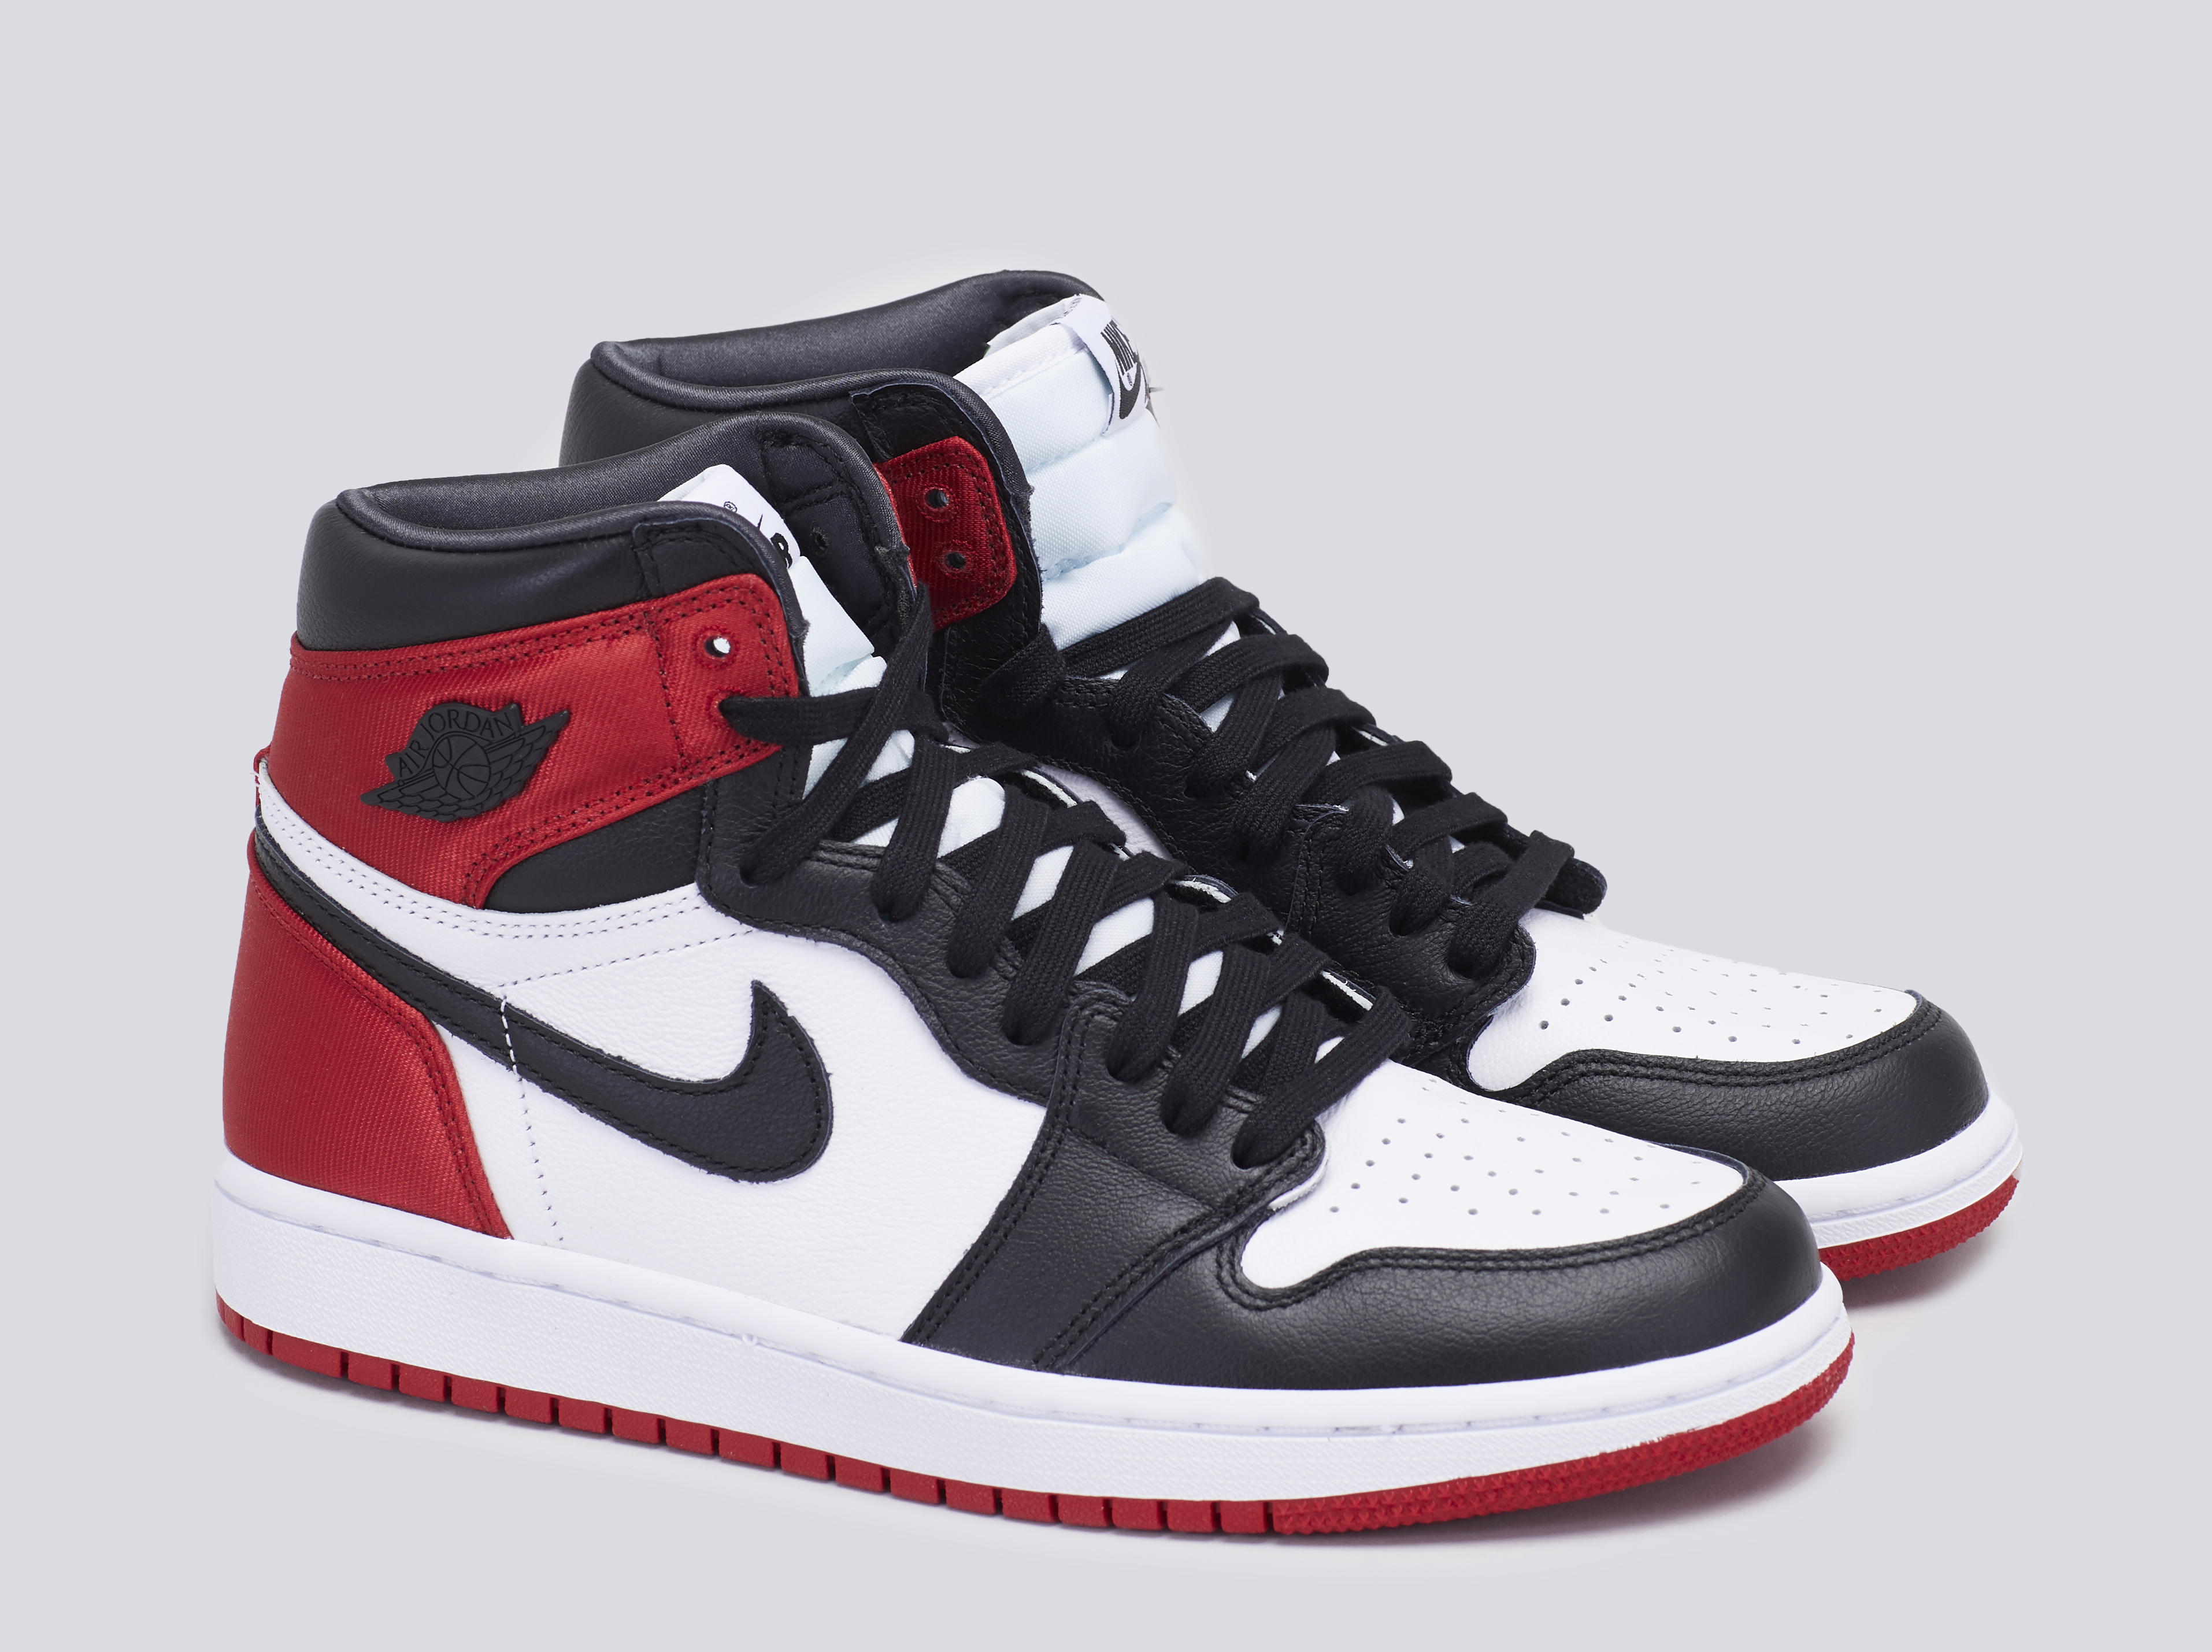 Air Jordan 1 Retro High Satin Black Toe (W) - By The Numbers ...